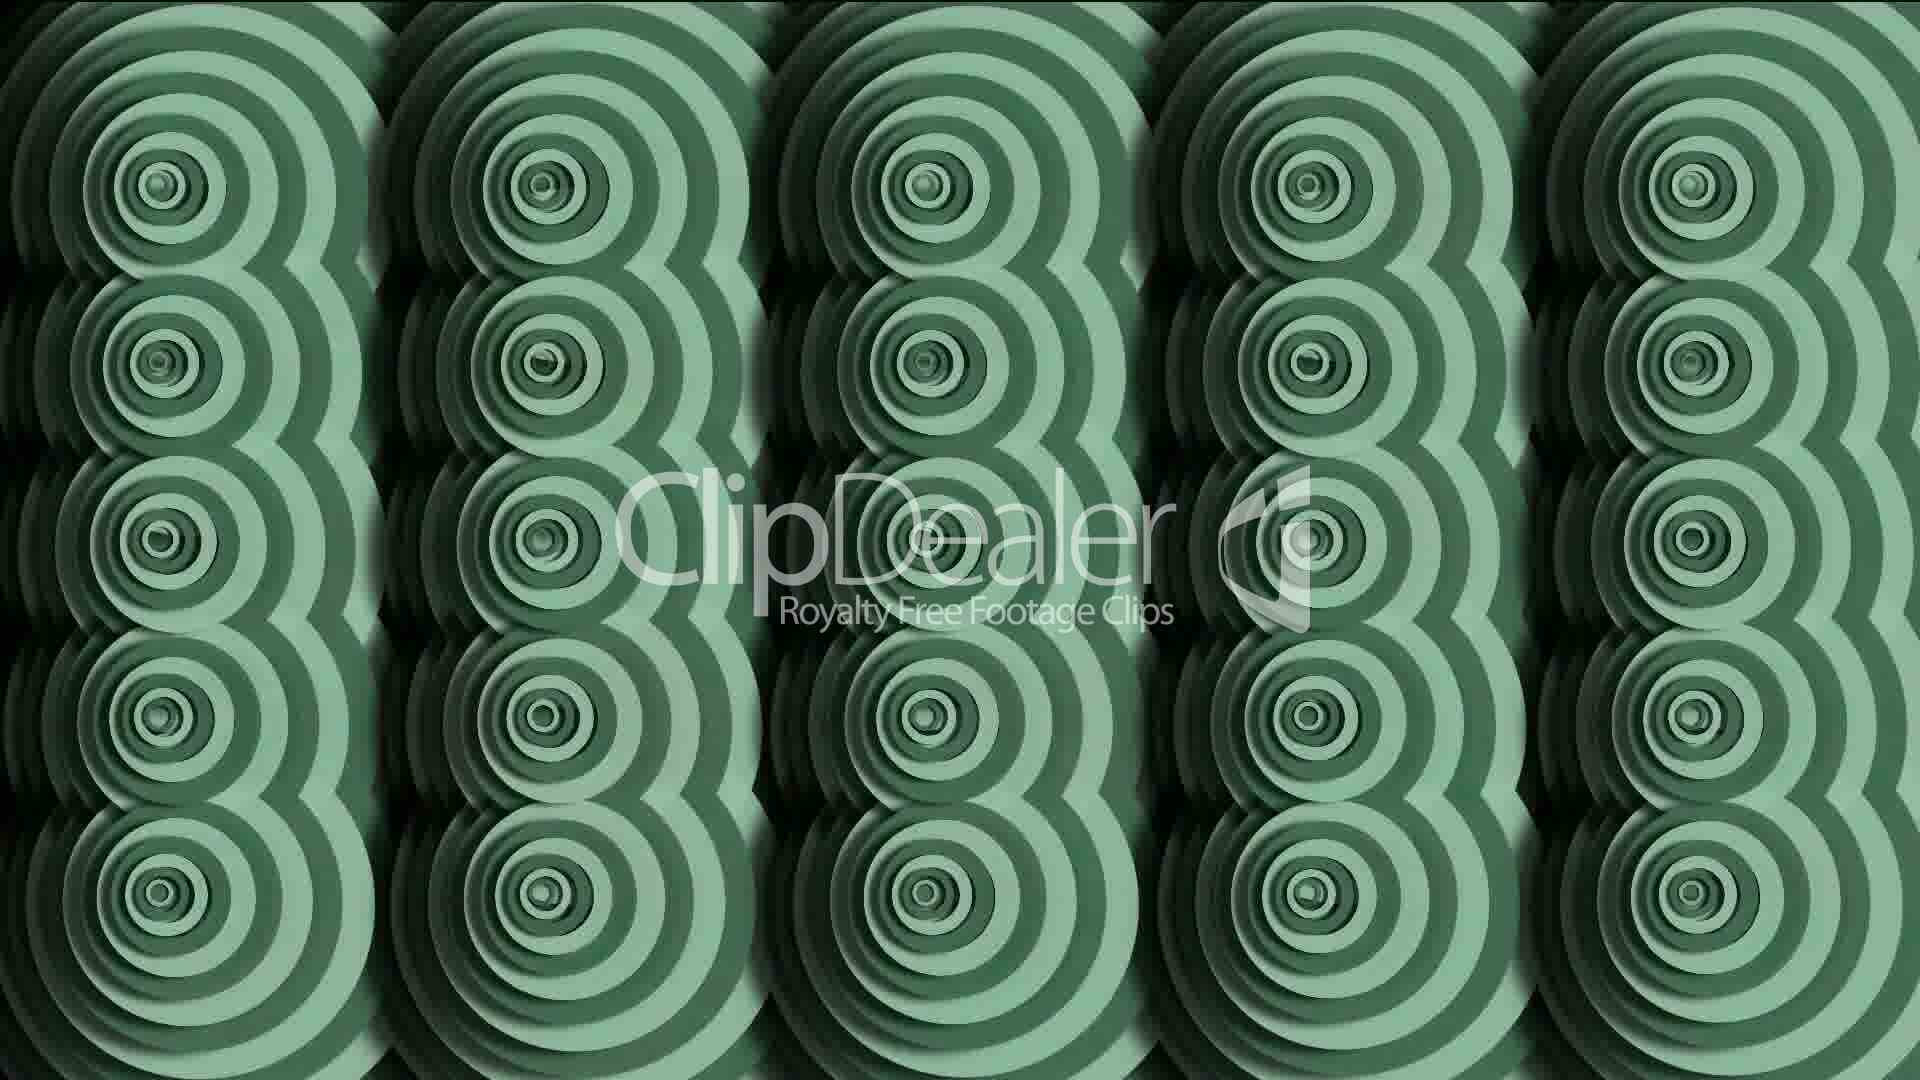 Moving circle pattern cloud ripple eastern classical